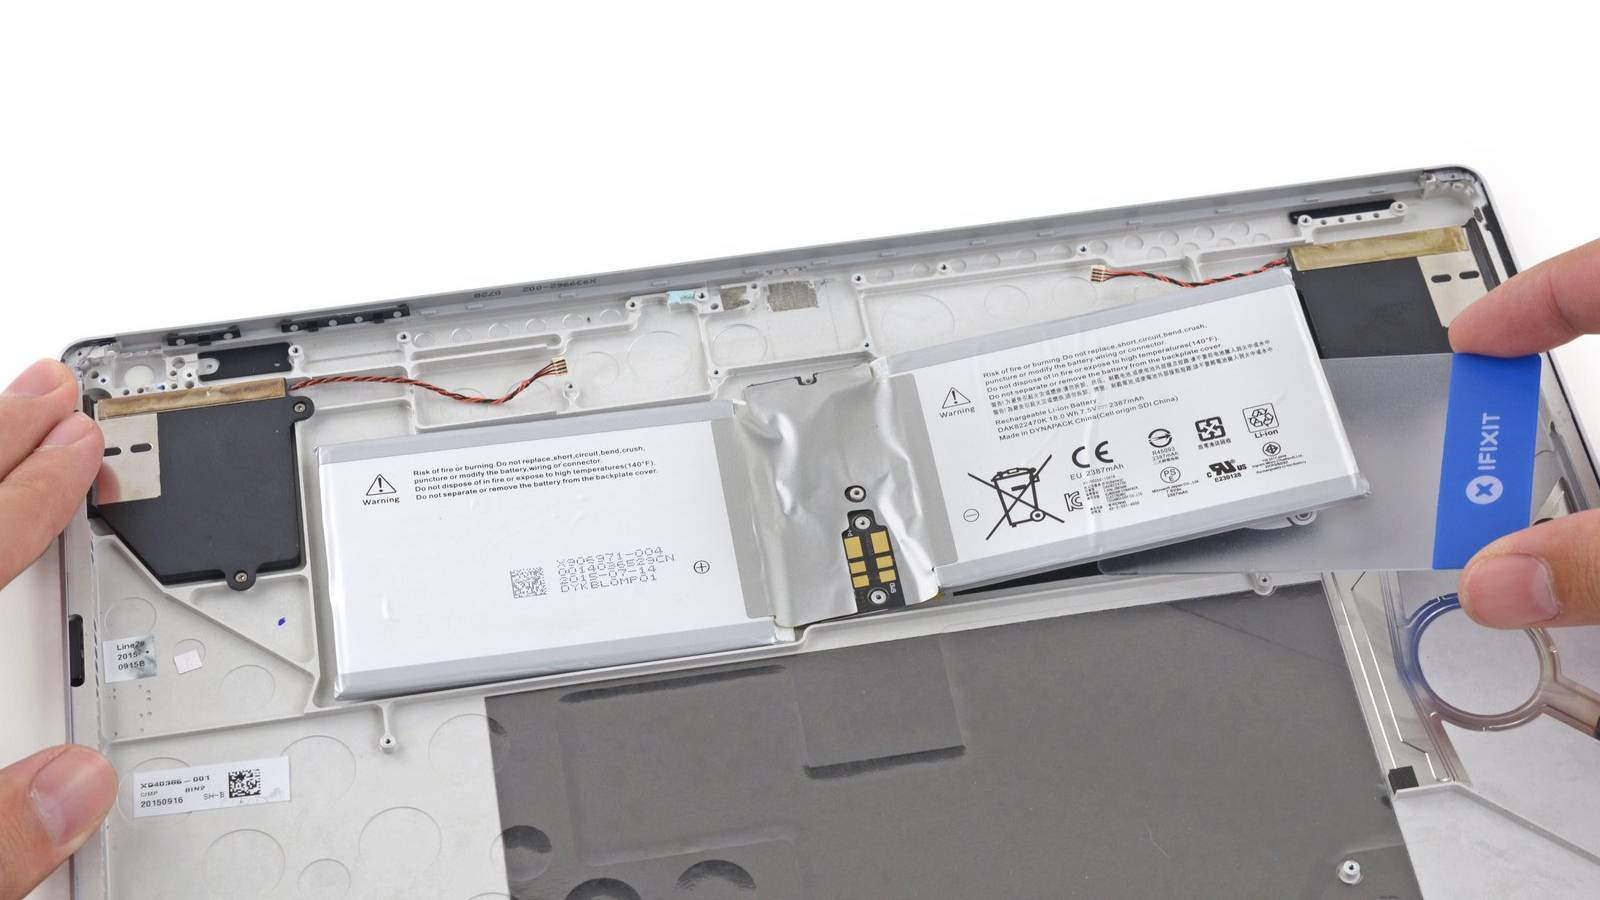 Removing the battery from a Surface Book display.